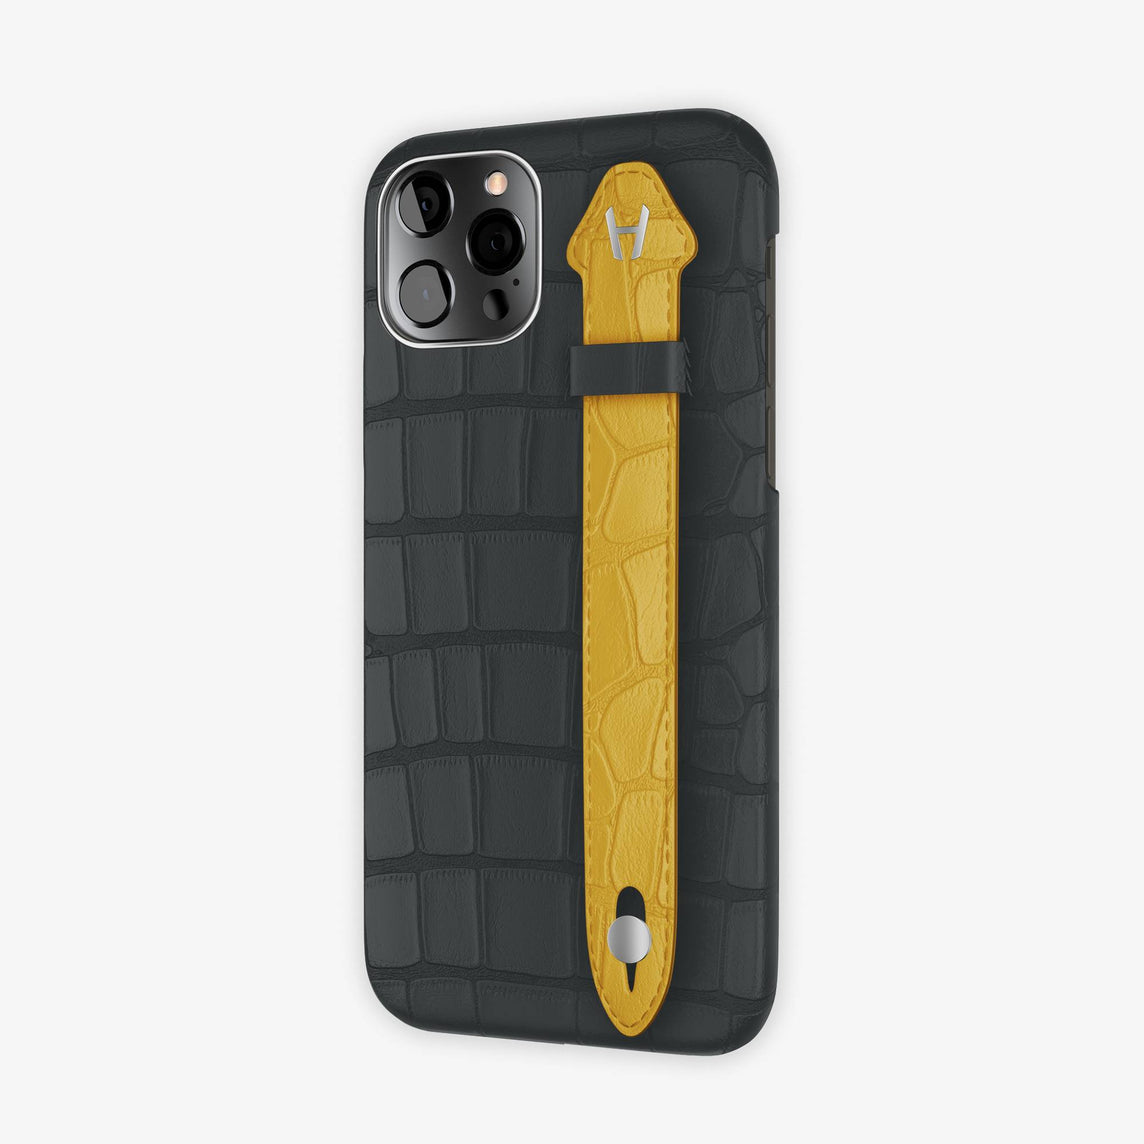 Alligator Side Finger Case iPhone 12 Pro | Anthracite/Yellow -Stainless Steel